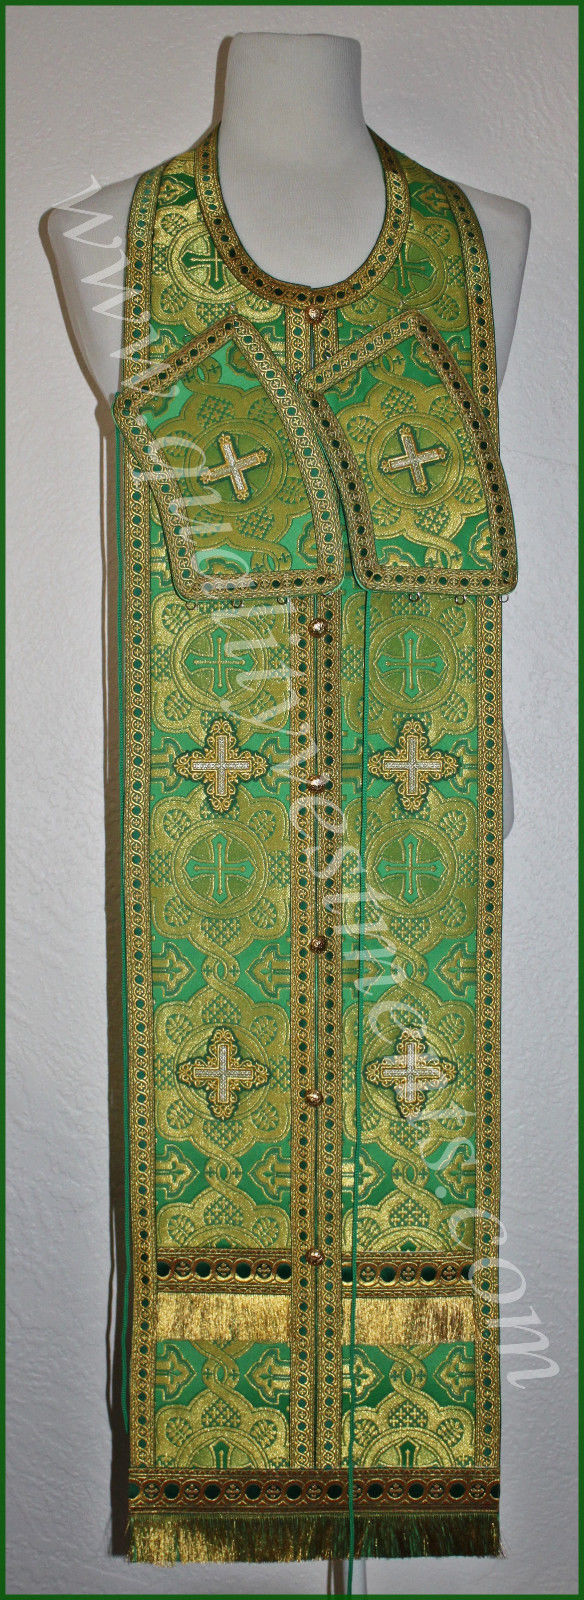 "Communion Priest Set Stole Cuffs Orthodox Green Gold 43"" (109 cm) length"